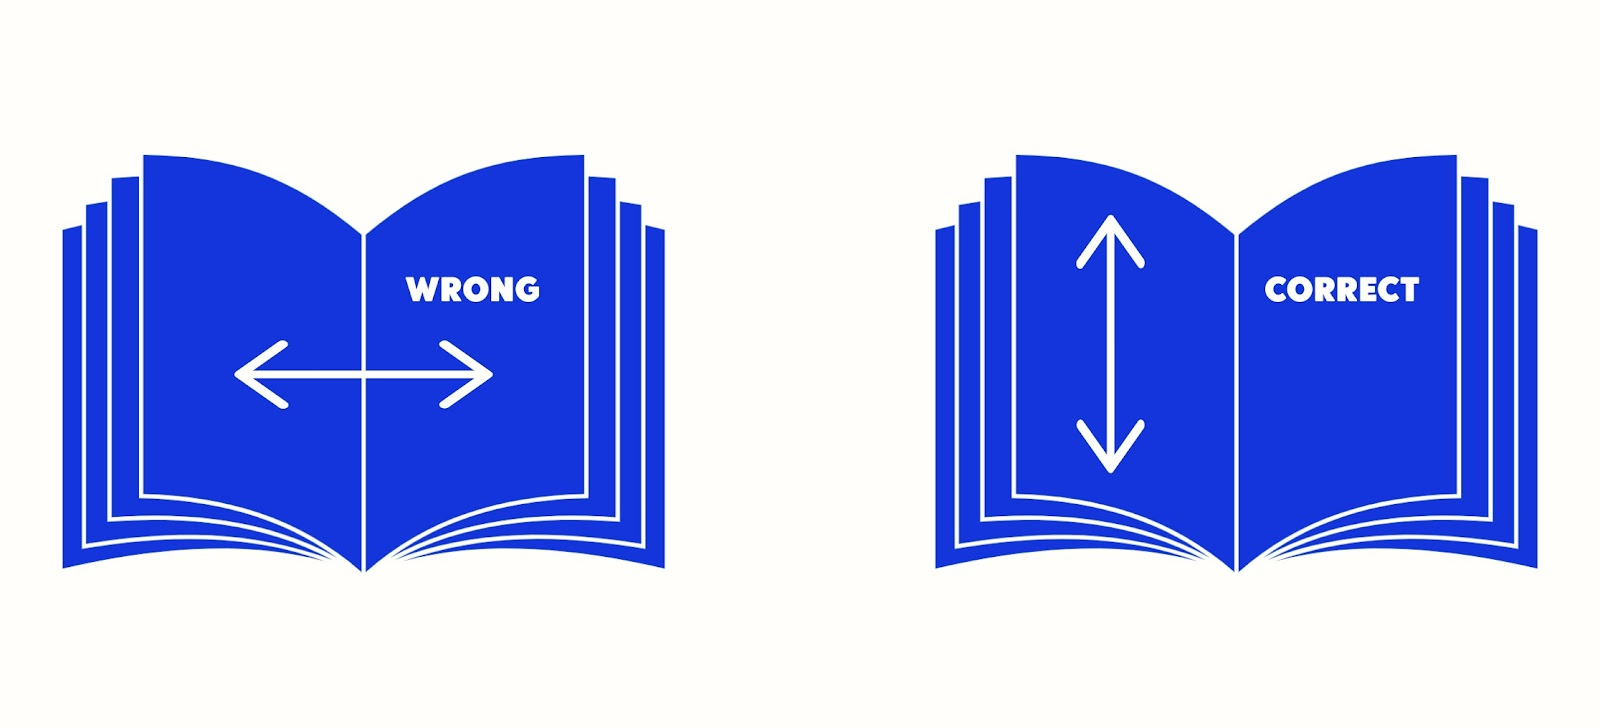 Two book icons side by side, the left book has arrows running left to write with the text WRONG. The book on the right has arrows running up and down with the text CORRECT.